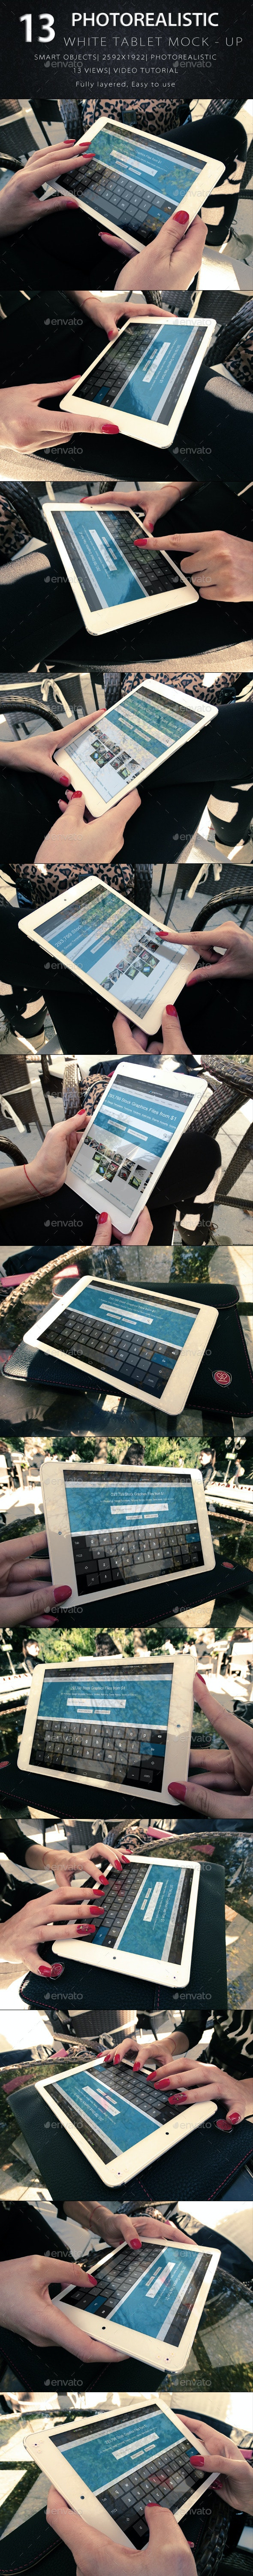 Photorealistic Tablet With Female Hands Mock-Up V2 - Product Mock-Ups Graphics